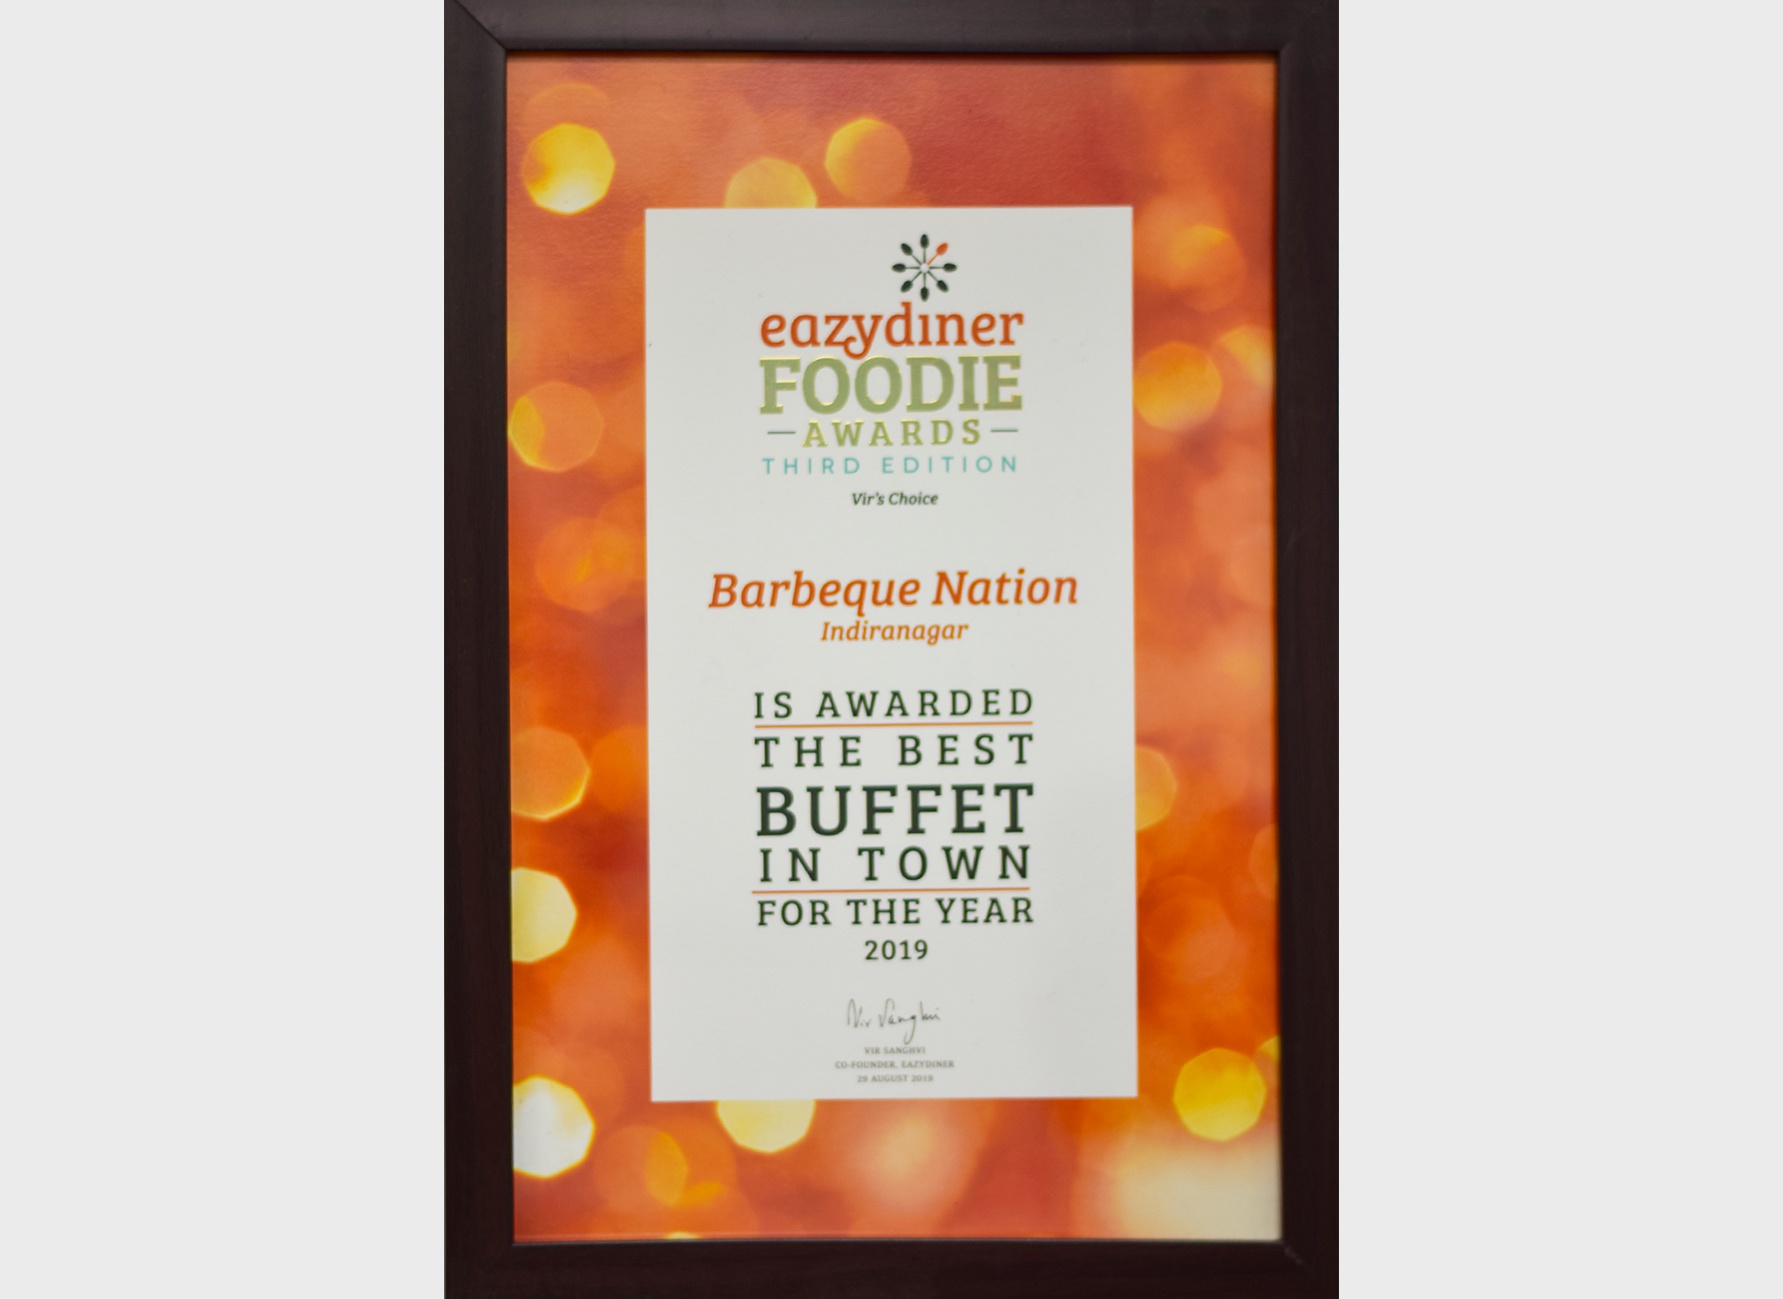 Eazydiner Foodie Award